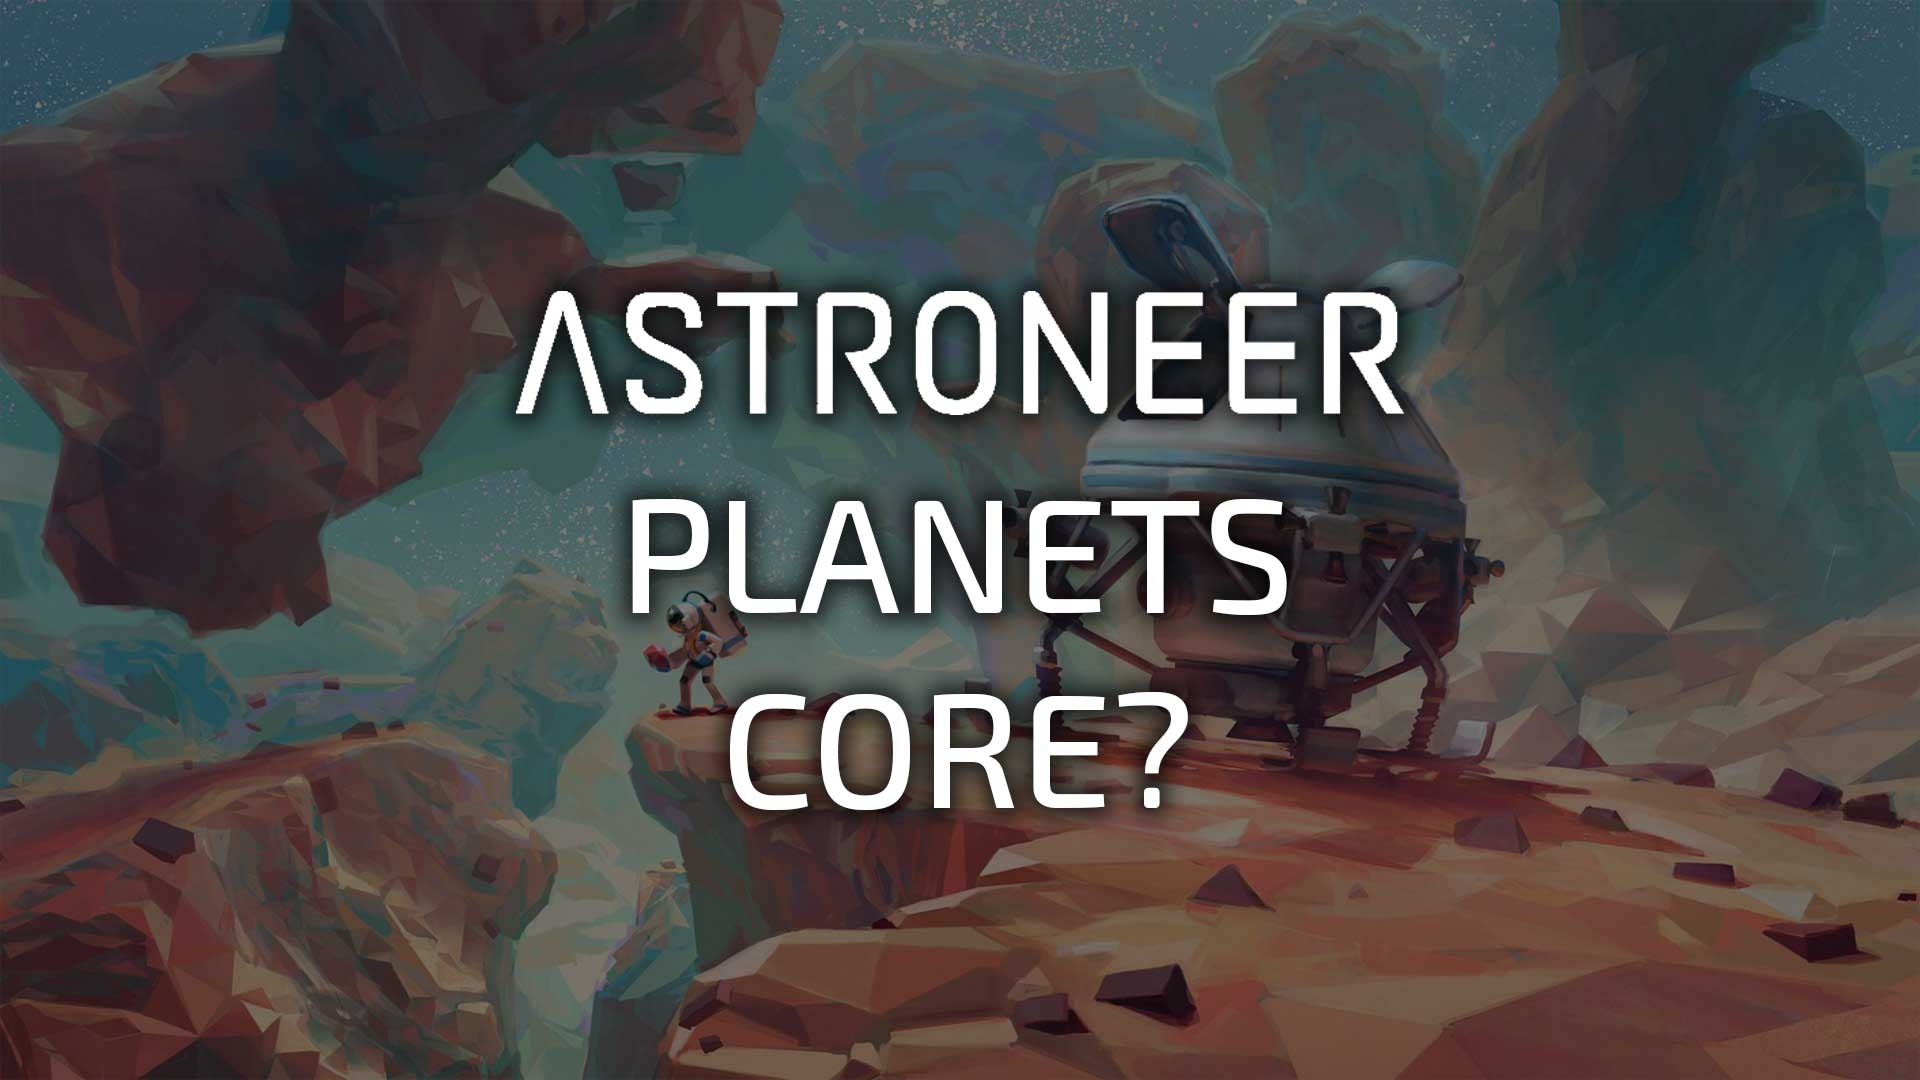 astroneer planets core